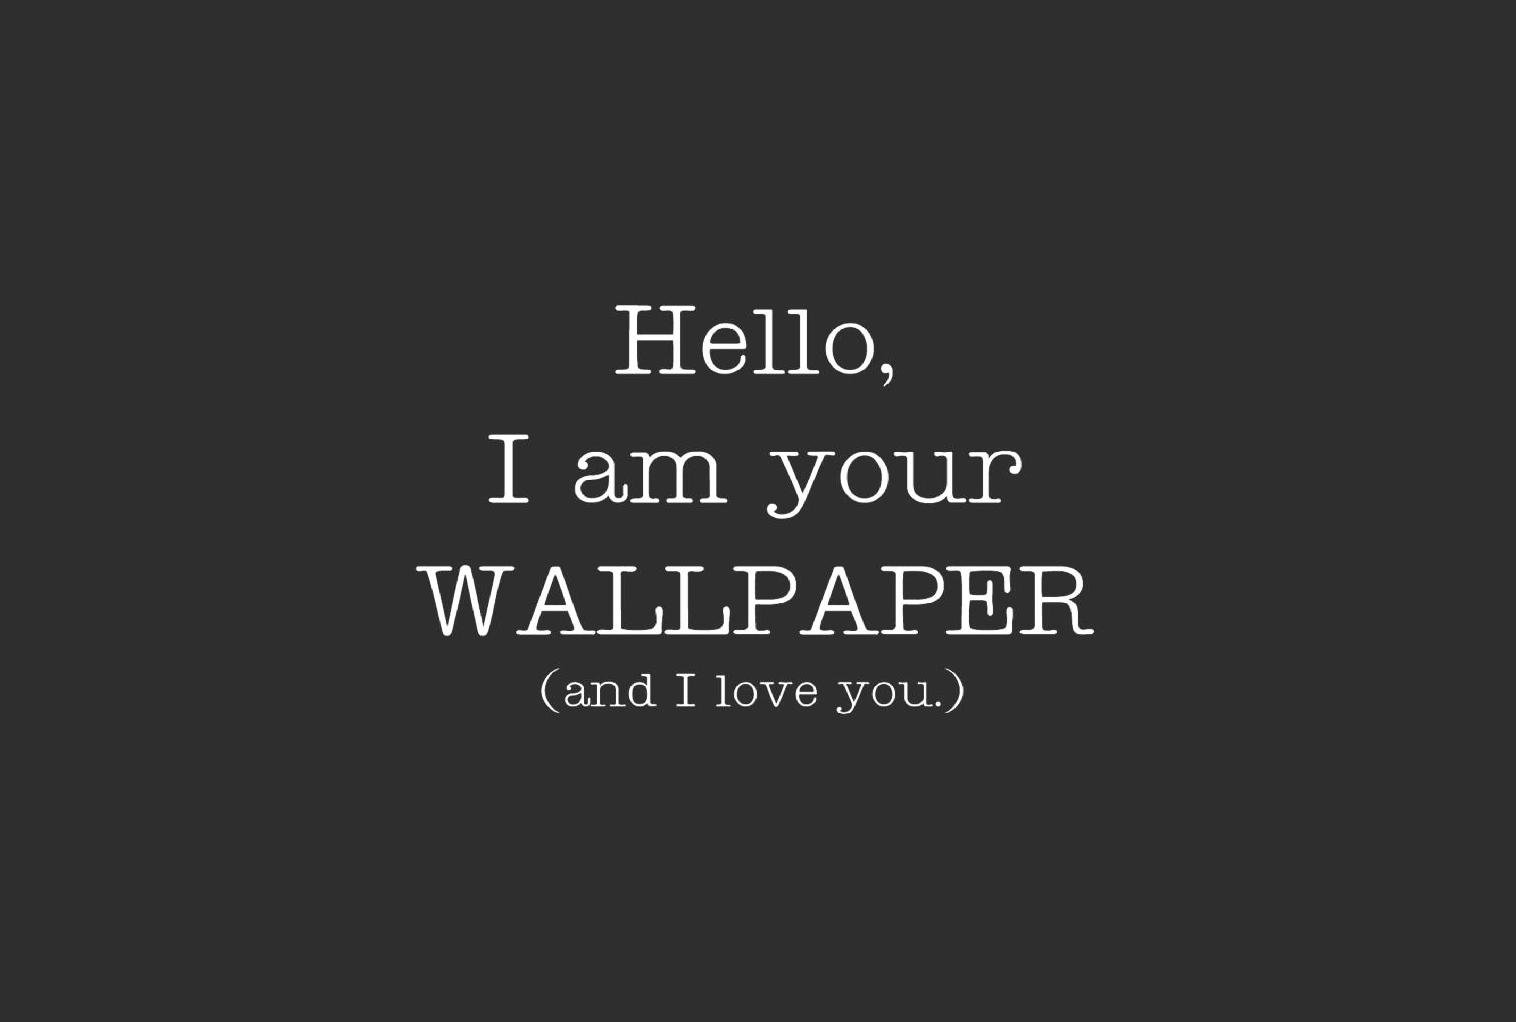 Free Download Best Wallpaper Ever 1516x1022 For Your